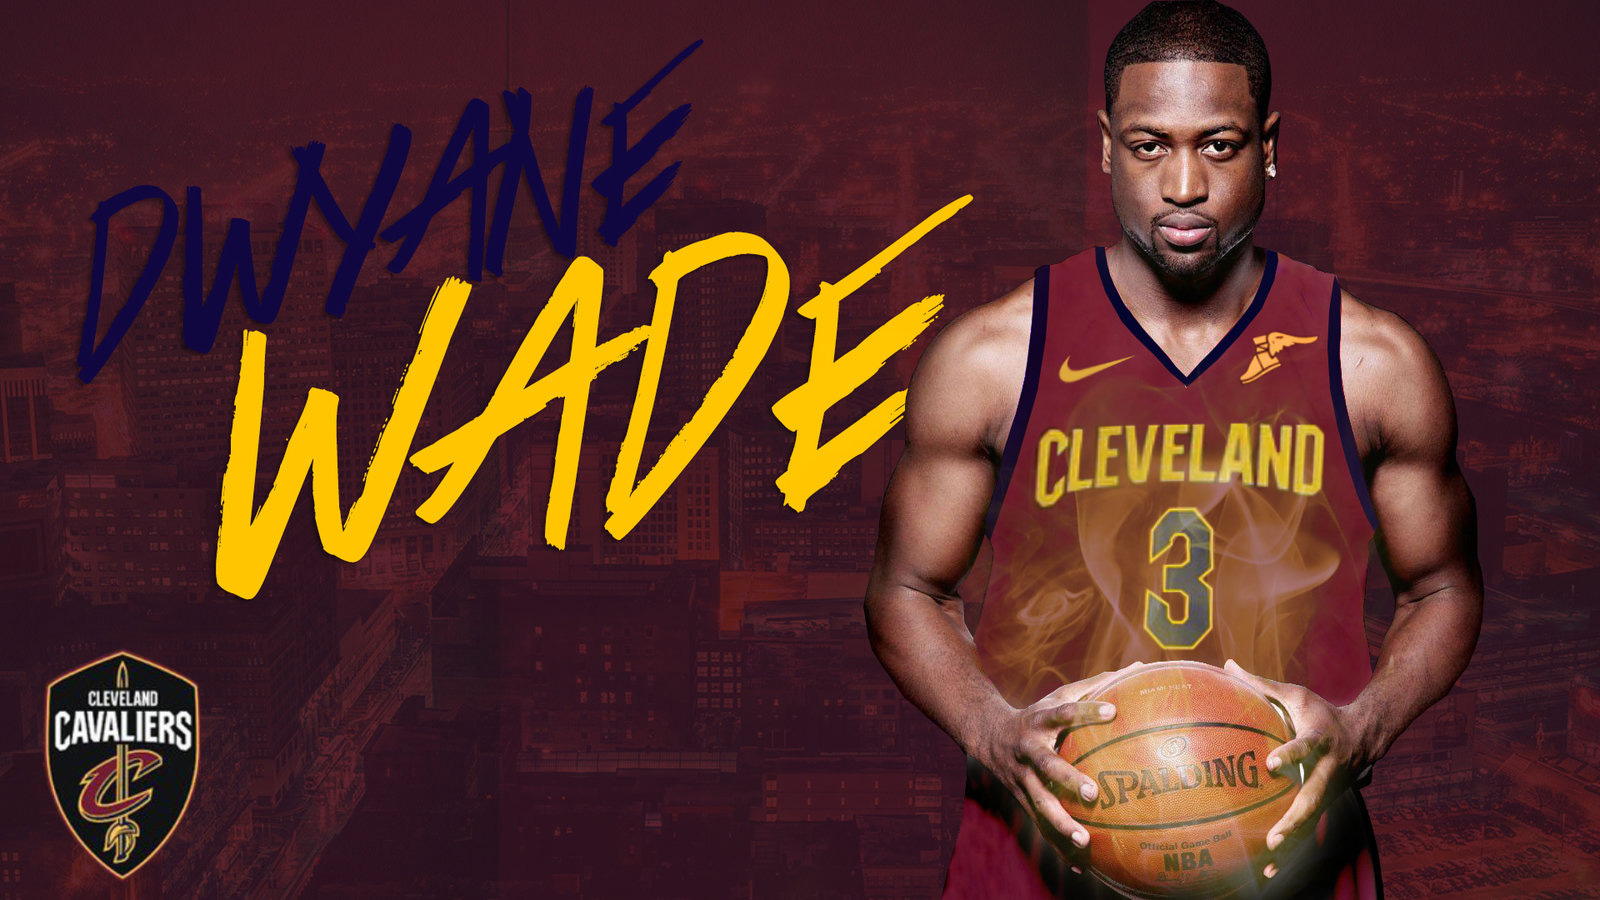 NBA Wallpapers Dwyane Wade Cavaliers 2017 1600x900 Wallpaper